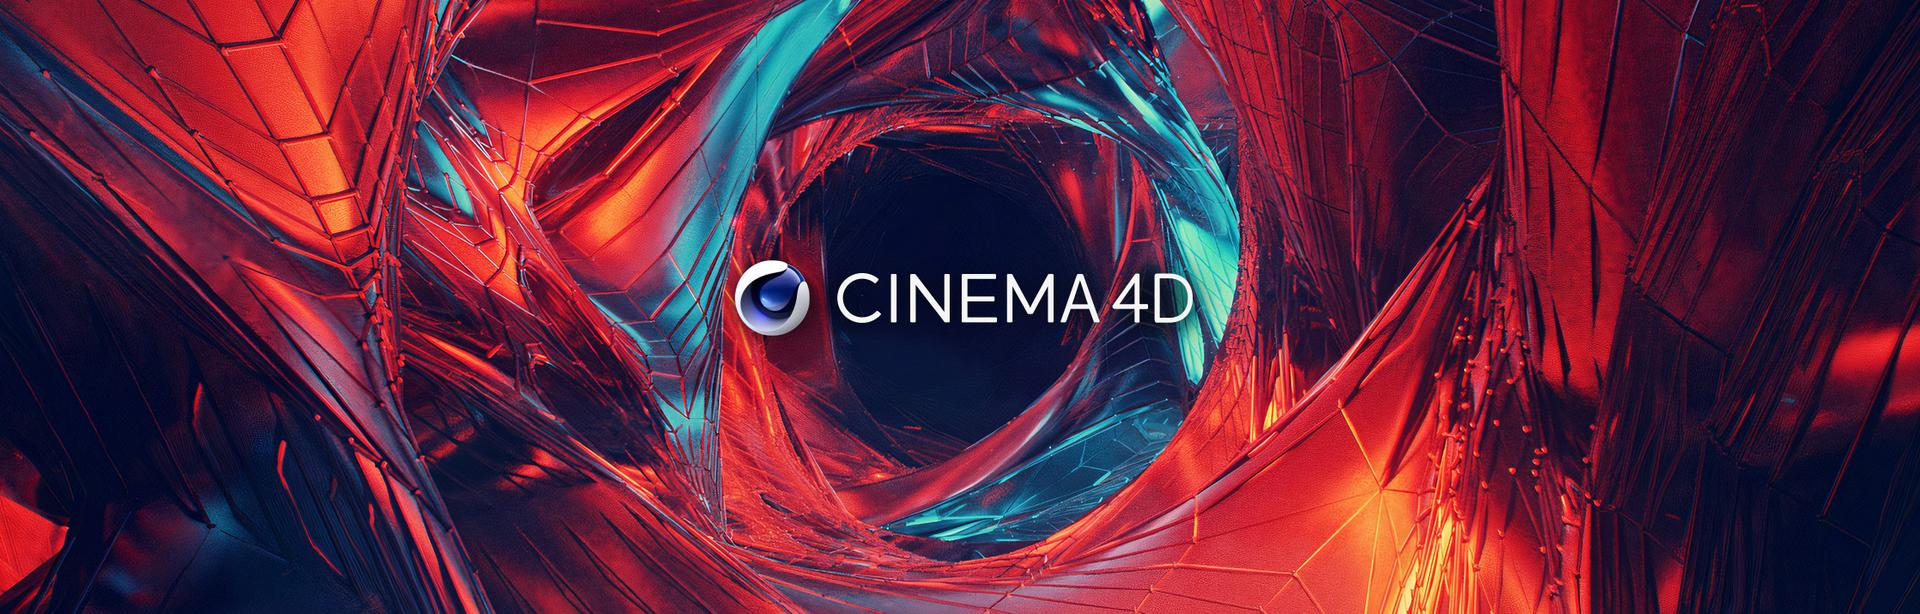 Maxon Cinema 4D S22.123 Mac三维软件英文/中文破解版 C4D S22